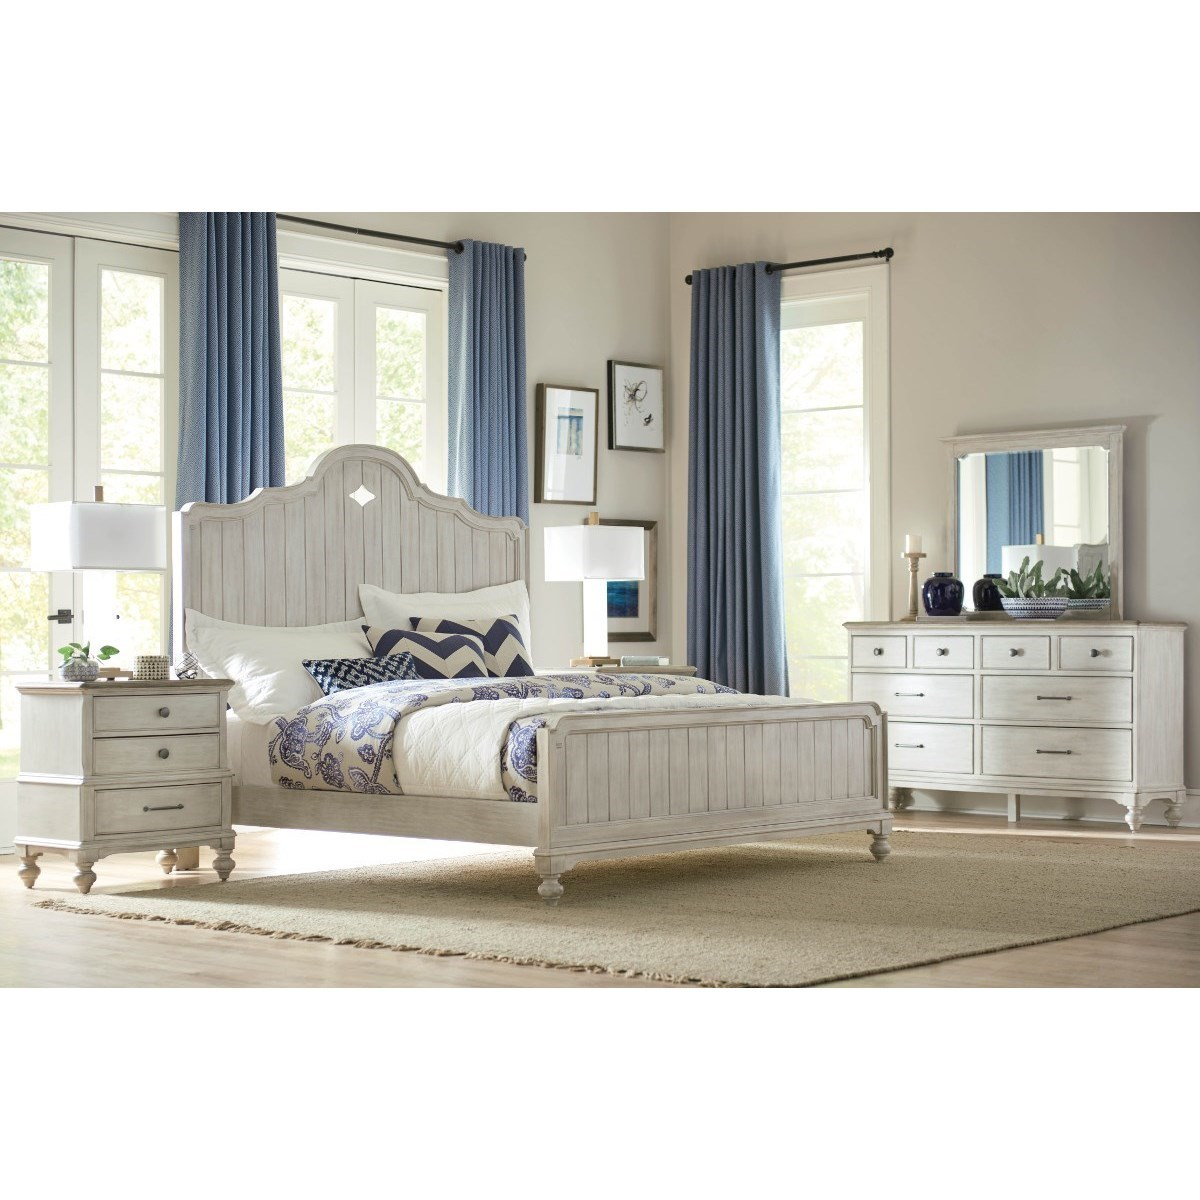 Litchfield King Bedroom Group by American Drew at Stoney Creek Furniture